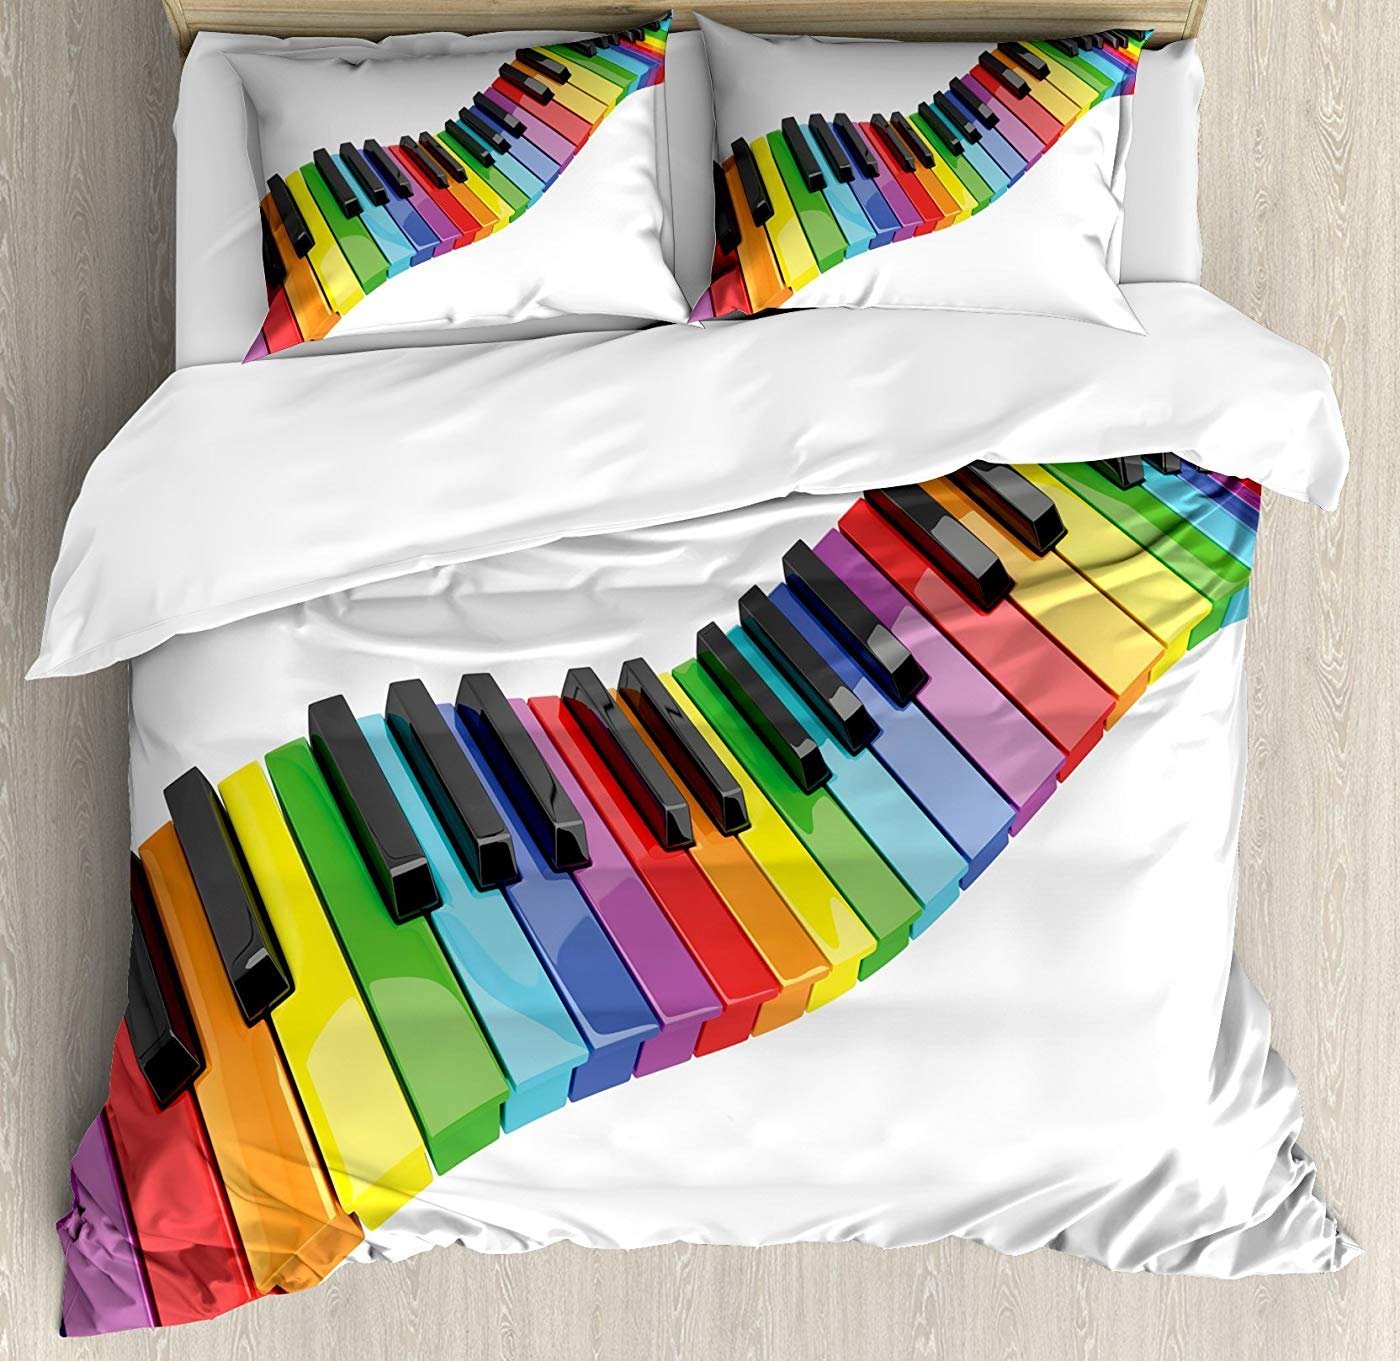 Multi 1 Twin Music Duvet Cover Set Twin Size, Vibrant colord Piano Keyboard Wave Musician Arts Entertainment Harmony Instrument,Lightweight Microfiber Duvet Cover Sets, Multicolor